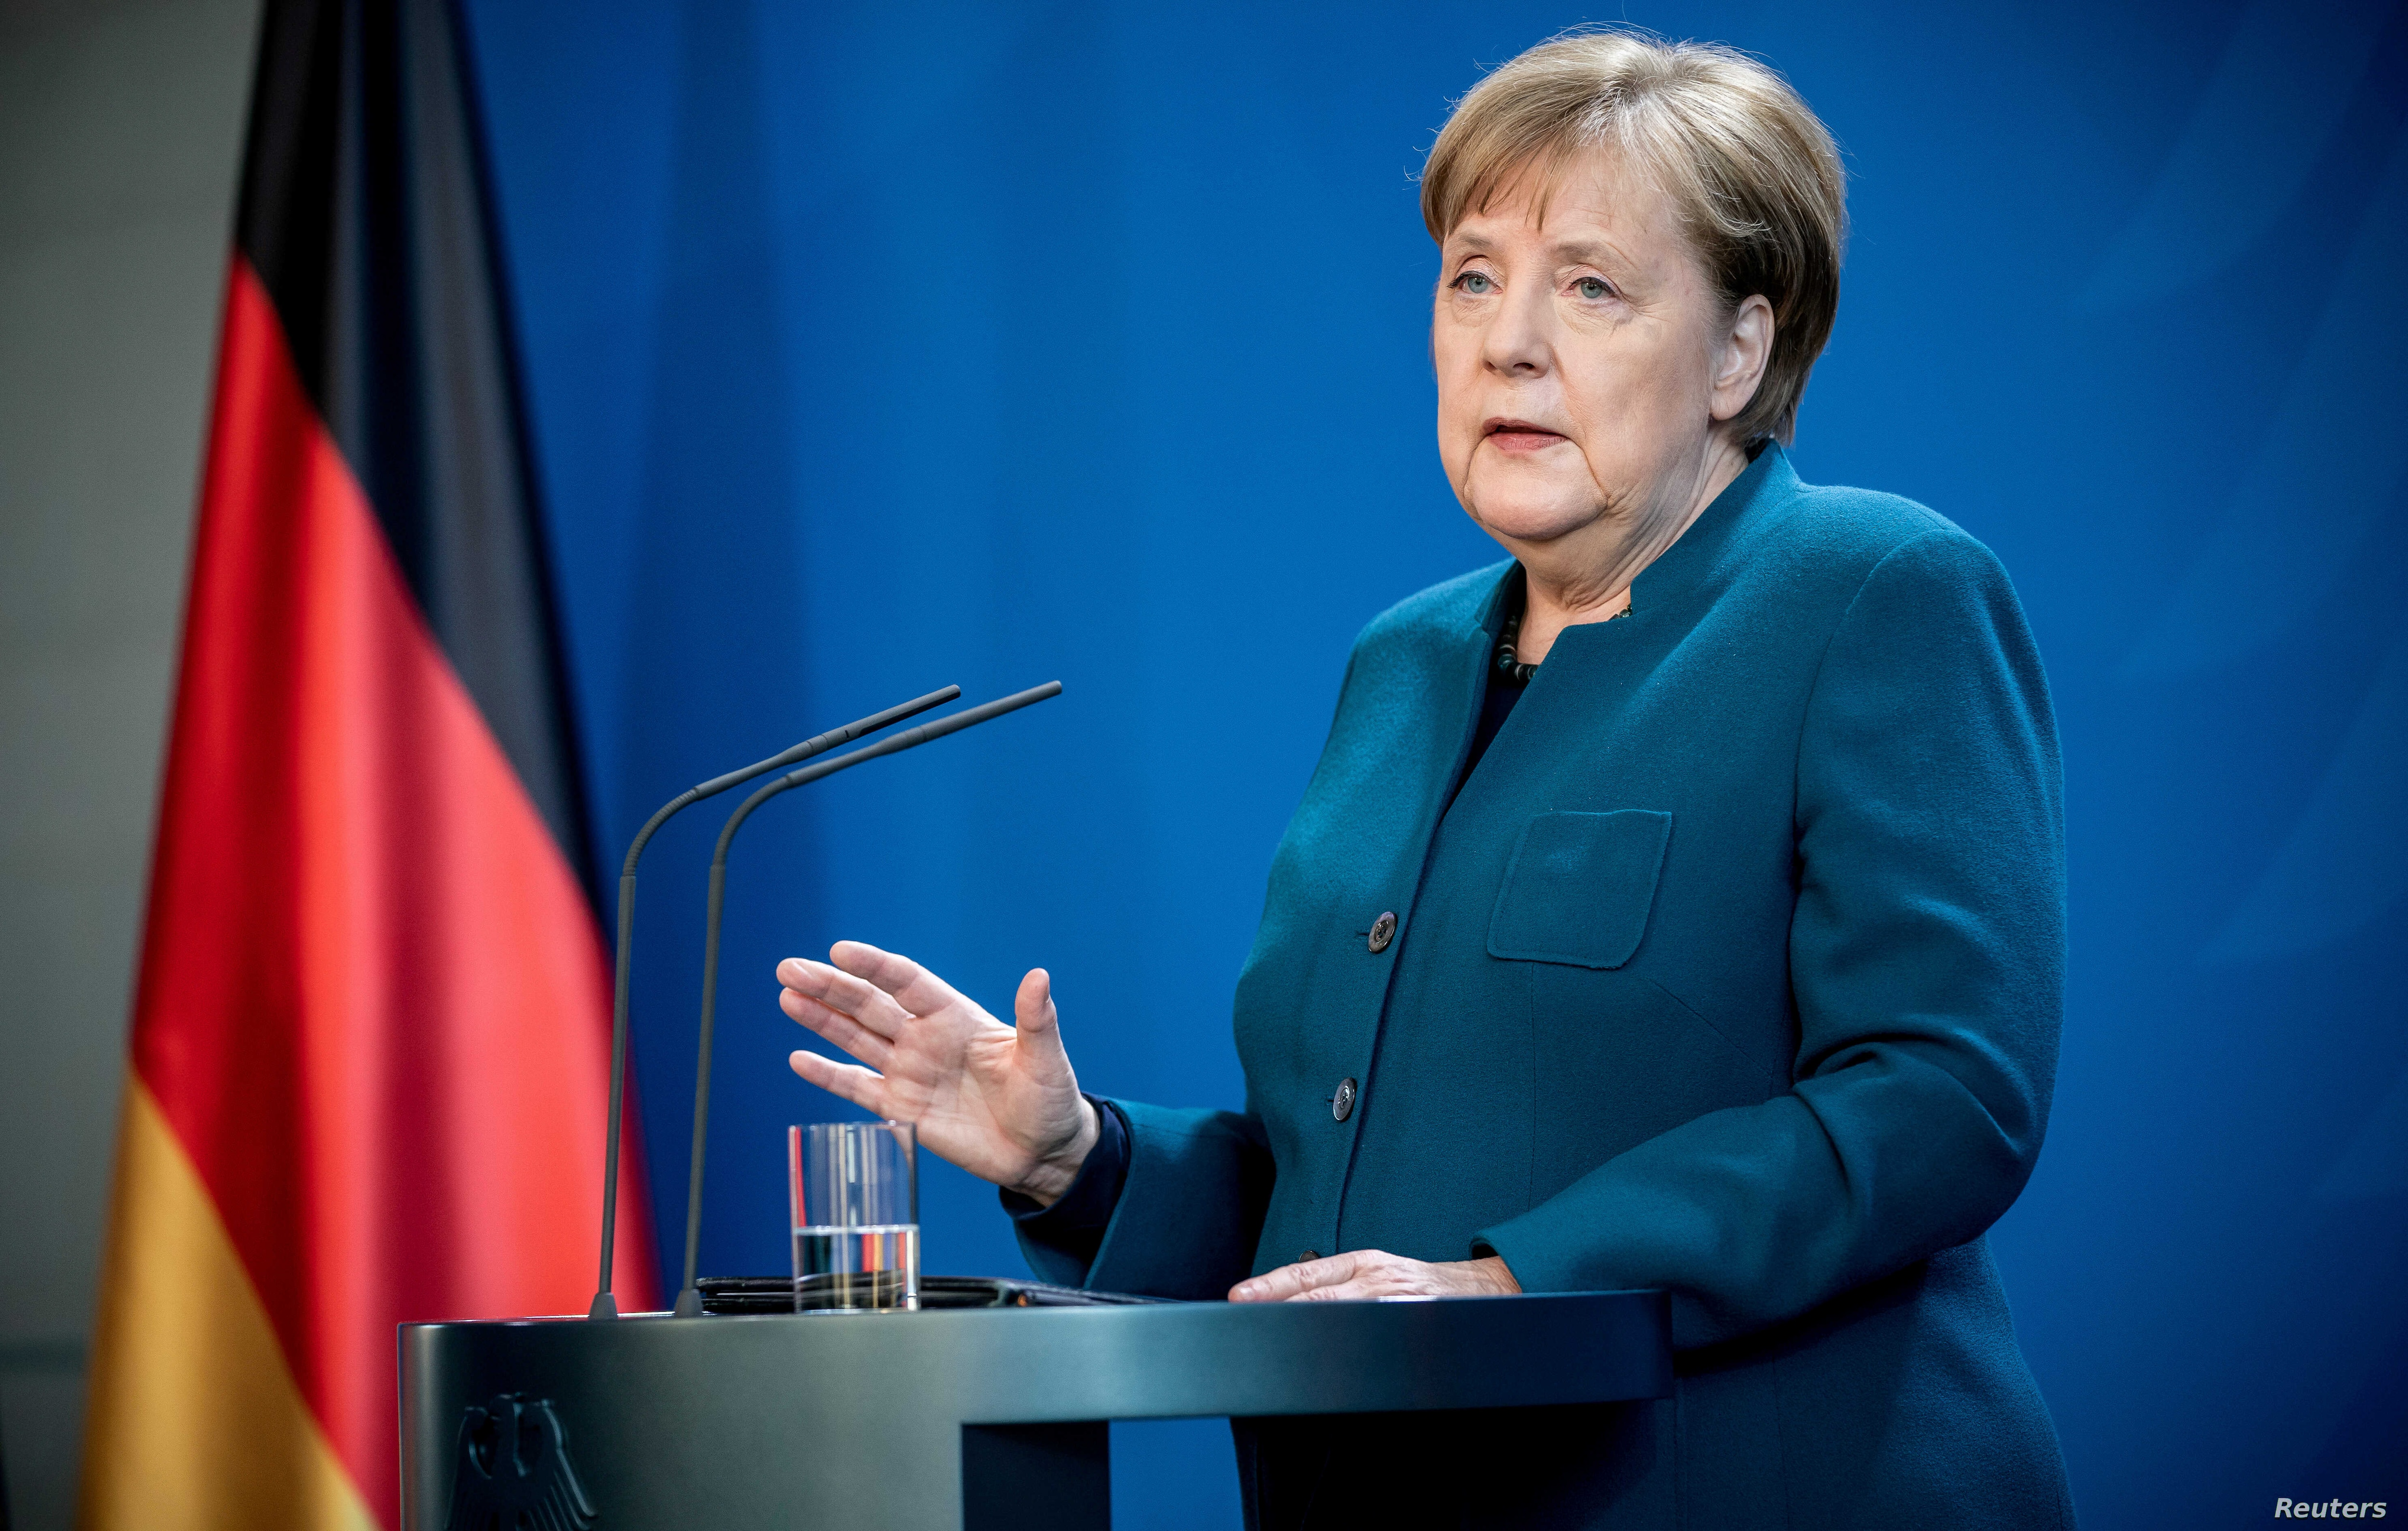 Germany S Merkel Shines In Virus Crisis Even As Power Wanes Voice Of America English